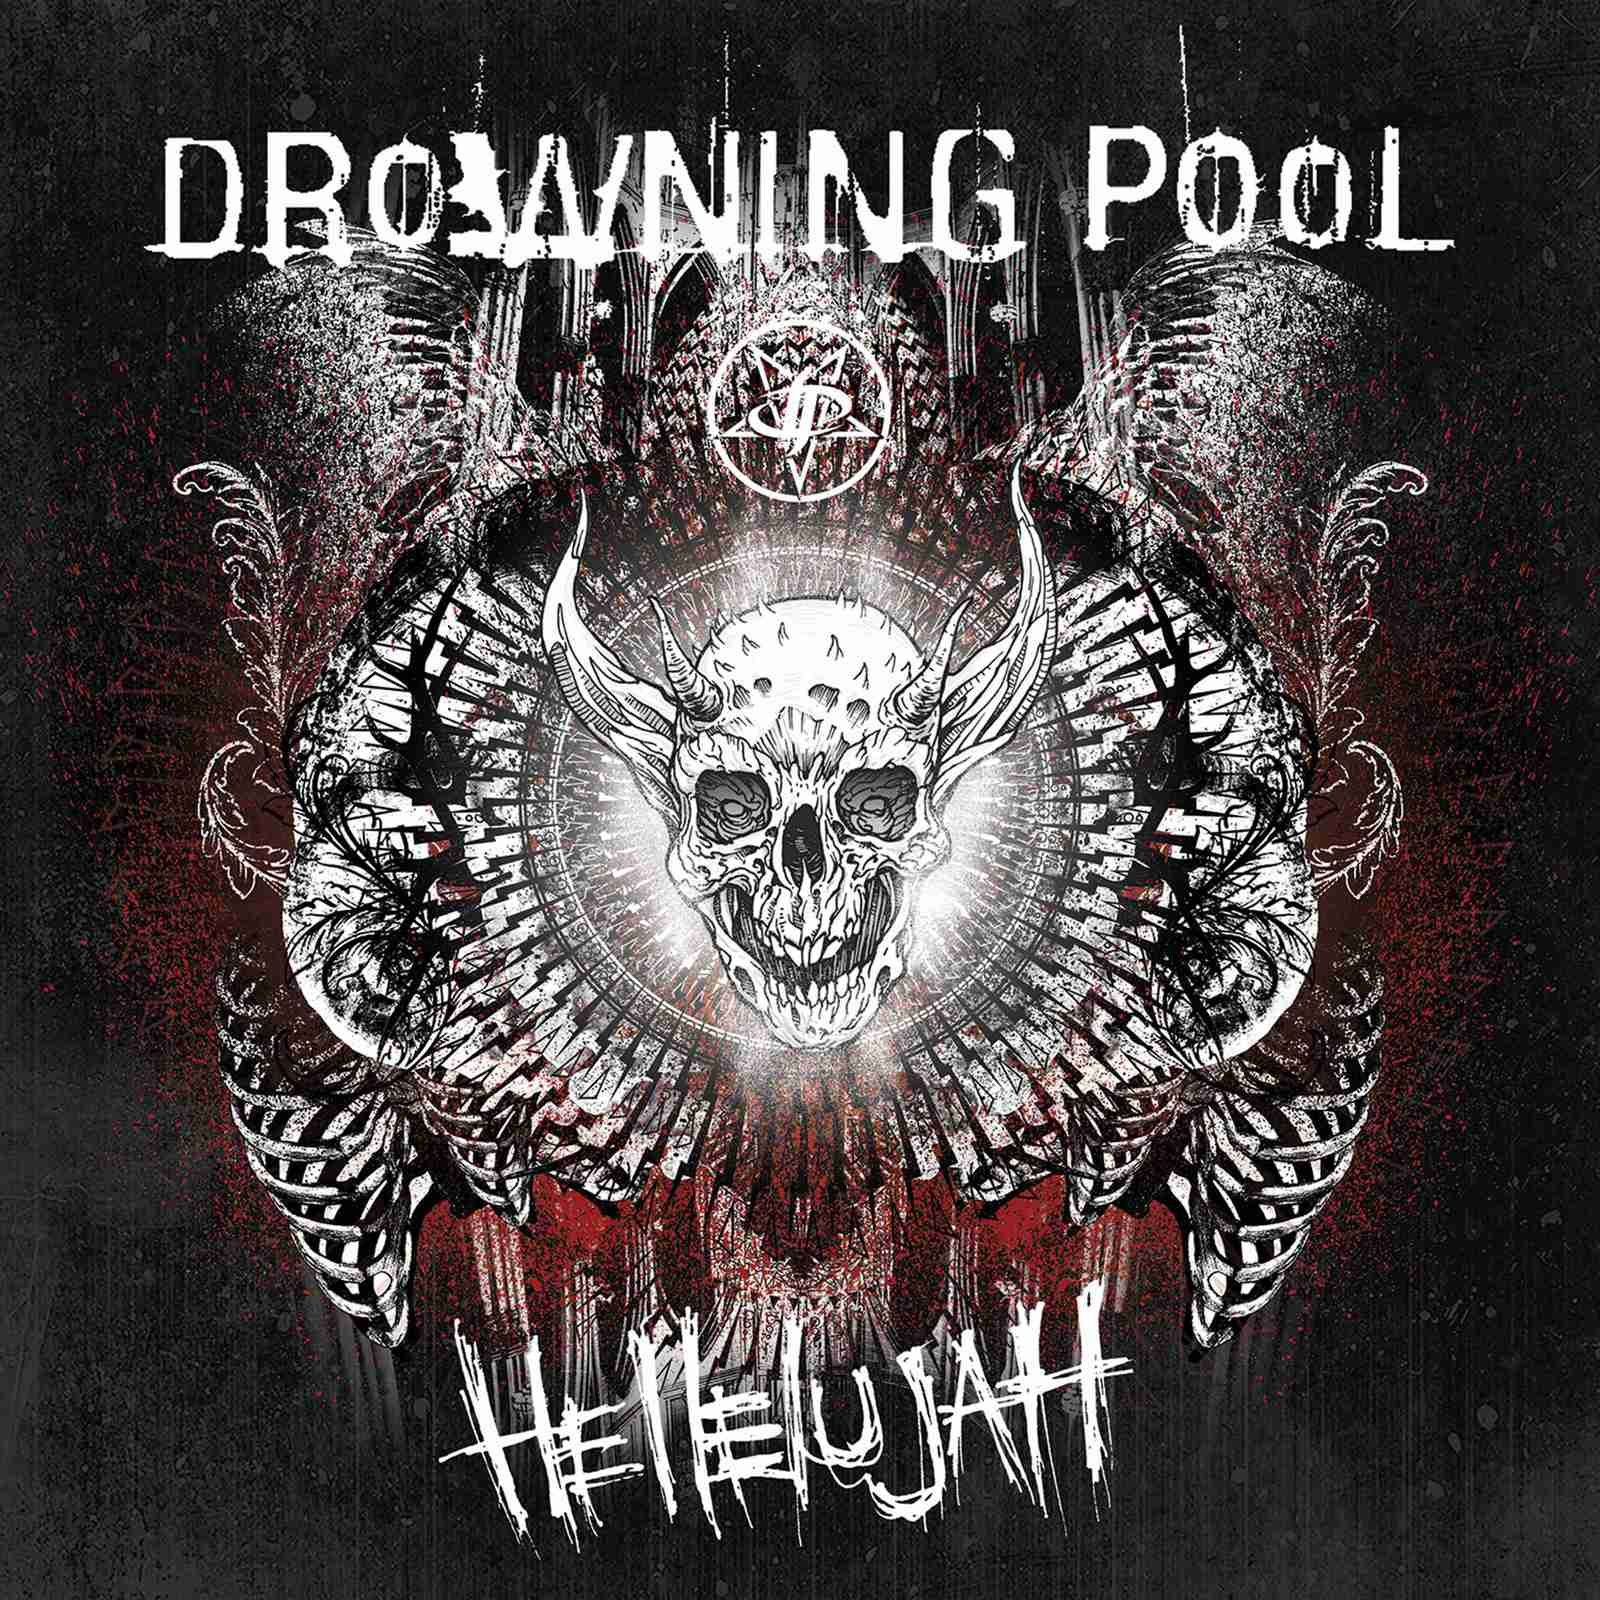 Cover & tracklist from new DROWNING POOL album